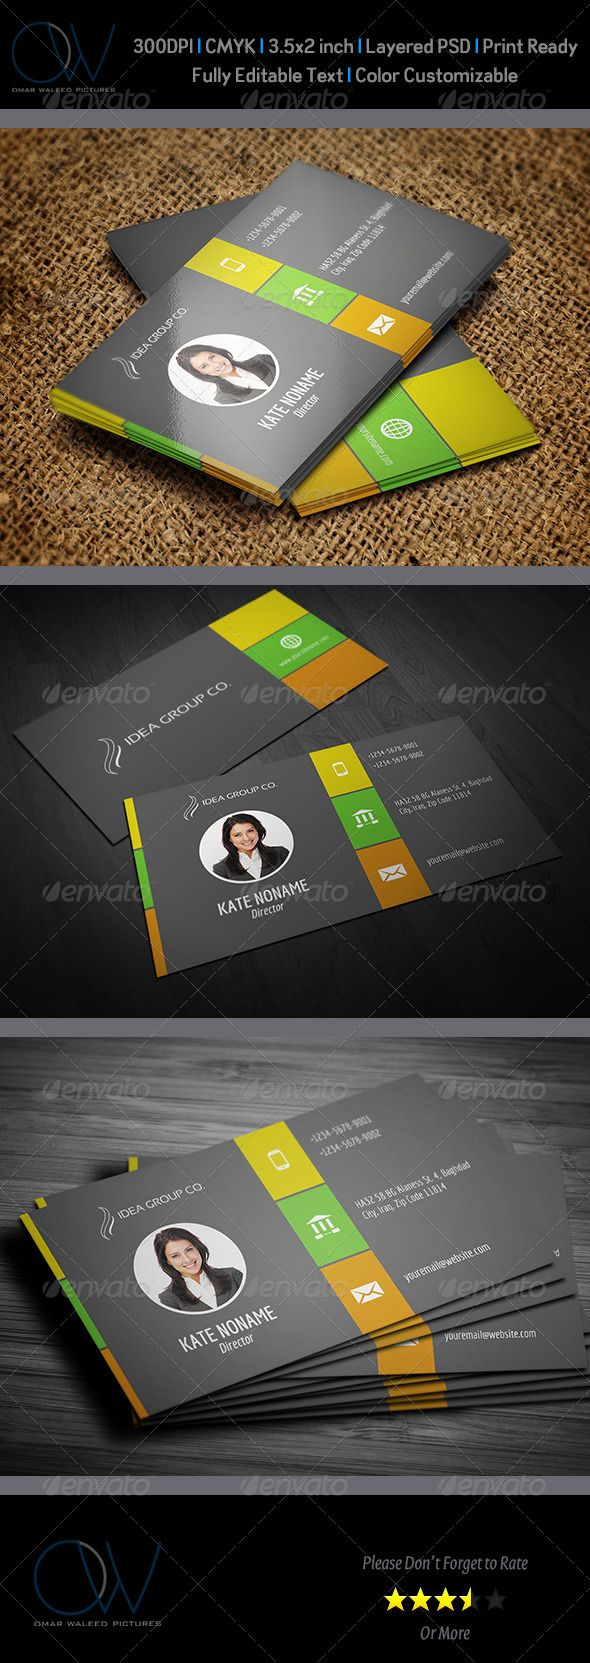 28 best heres my card images on pinterest business cards corporate business card vol44 magicingreecefo Gallery